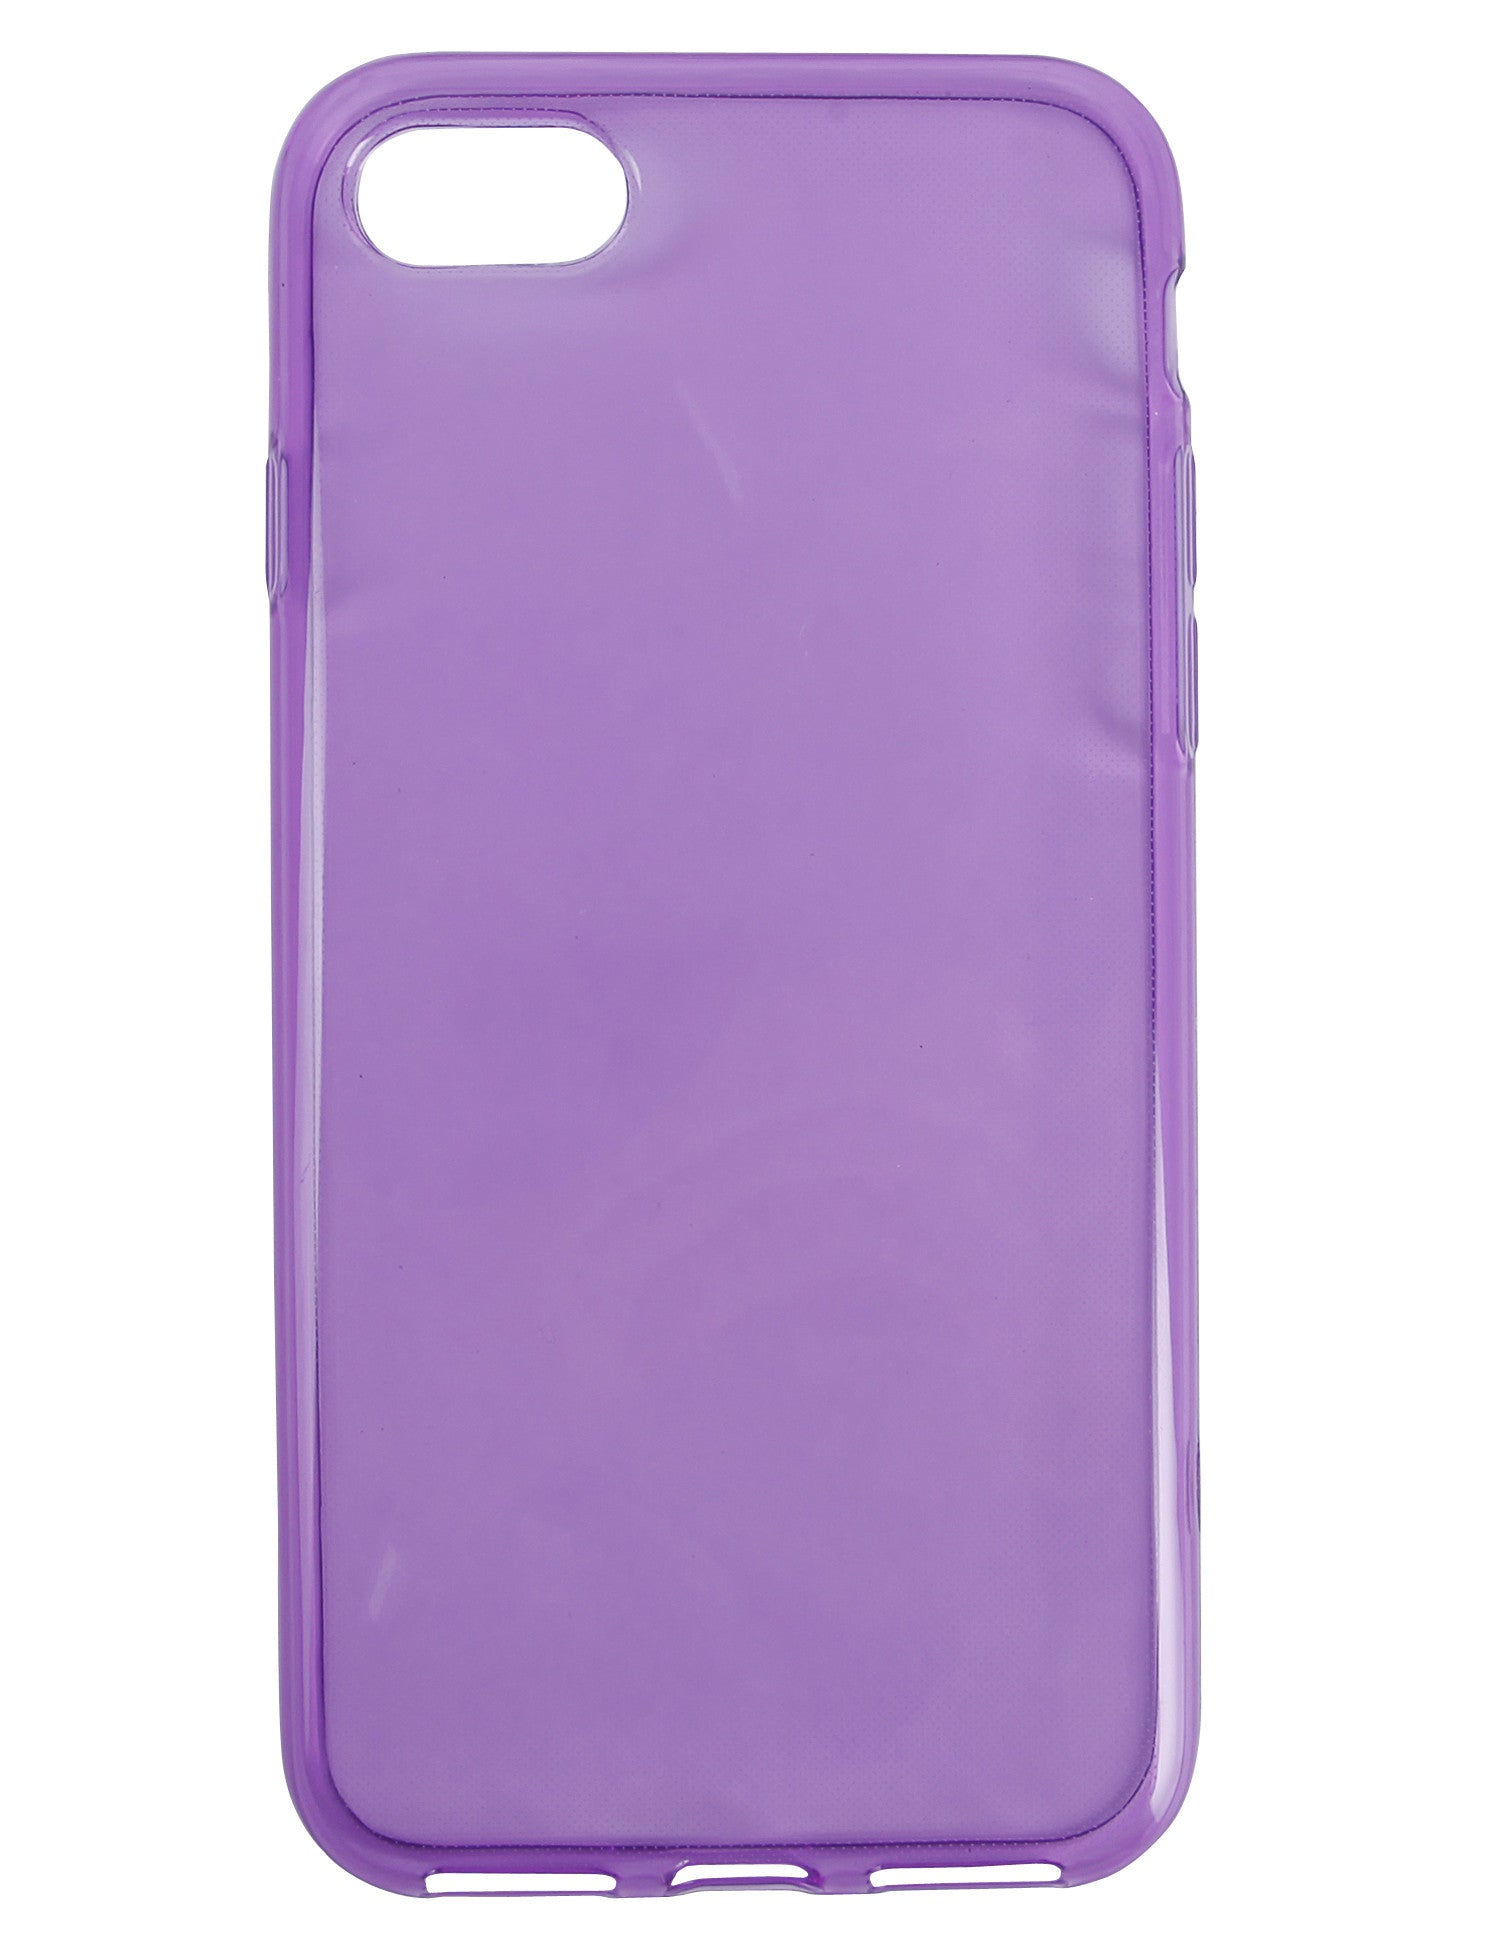 Image of iPhone 7 TPU case 716001-PP Purple